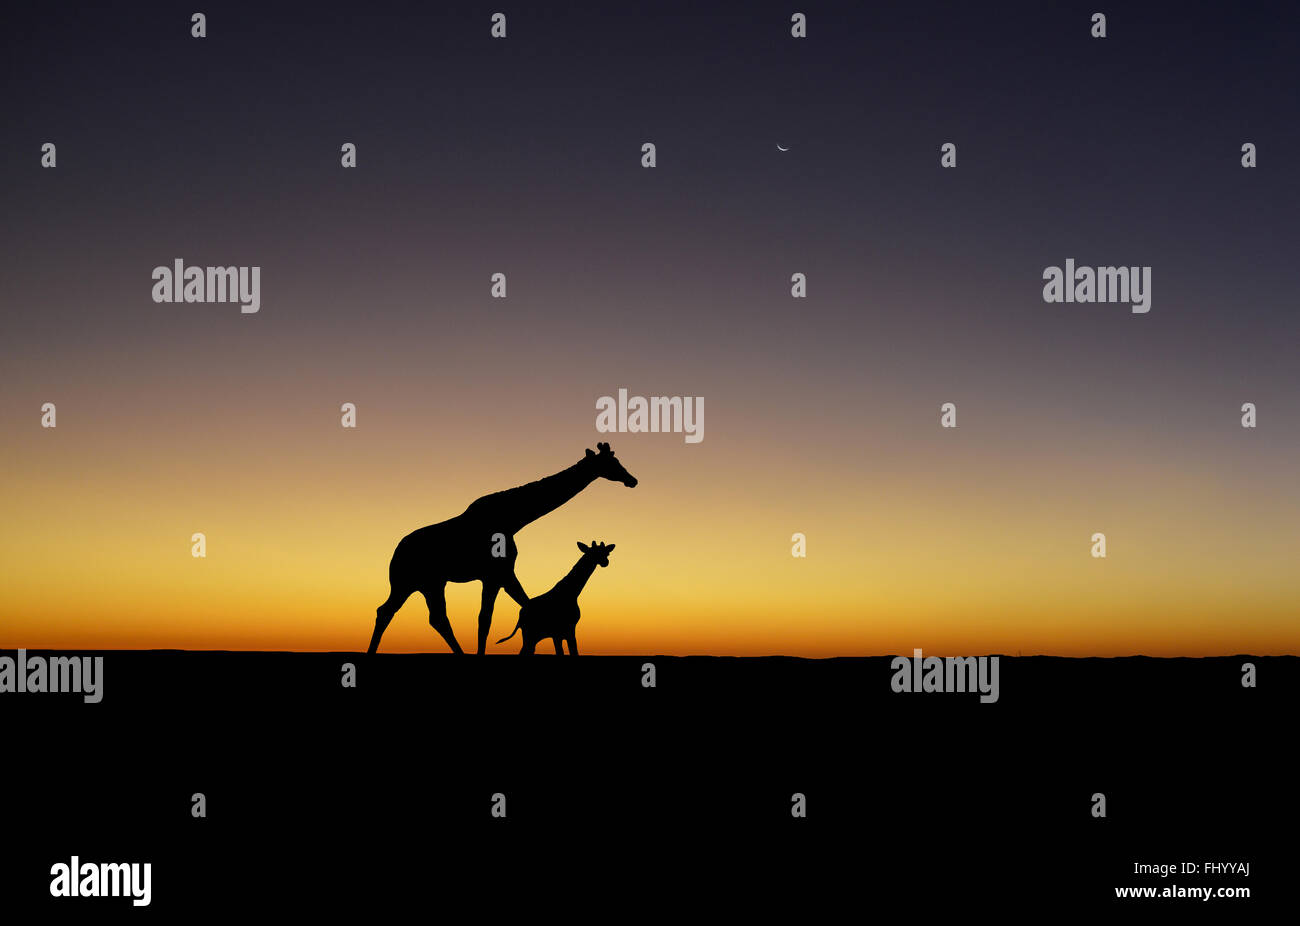 A Giraffe mother and baby are silhouetted at sunset - Stock Image